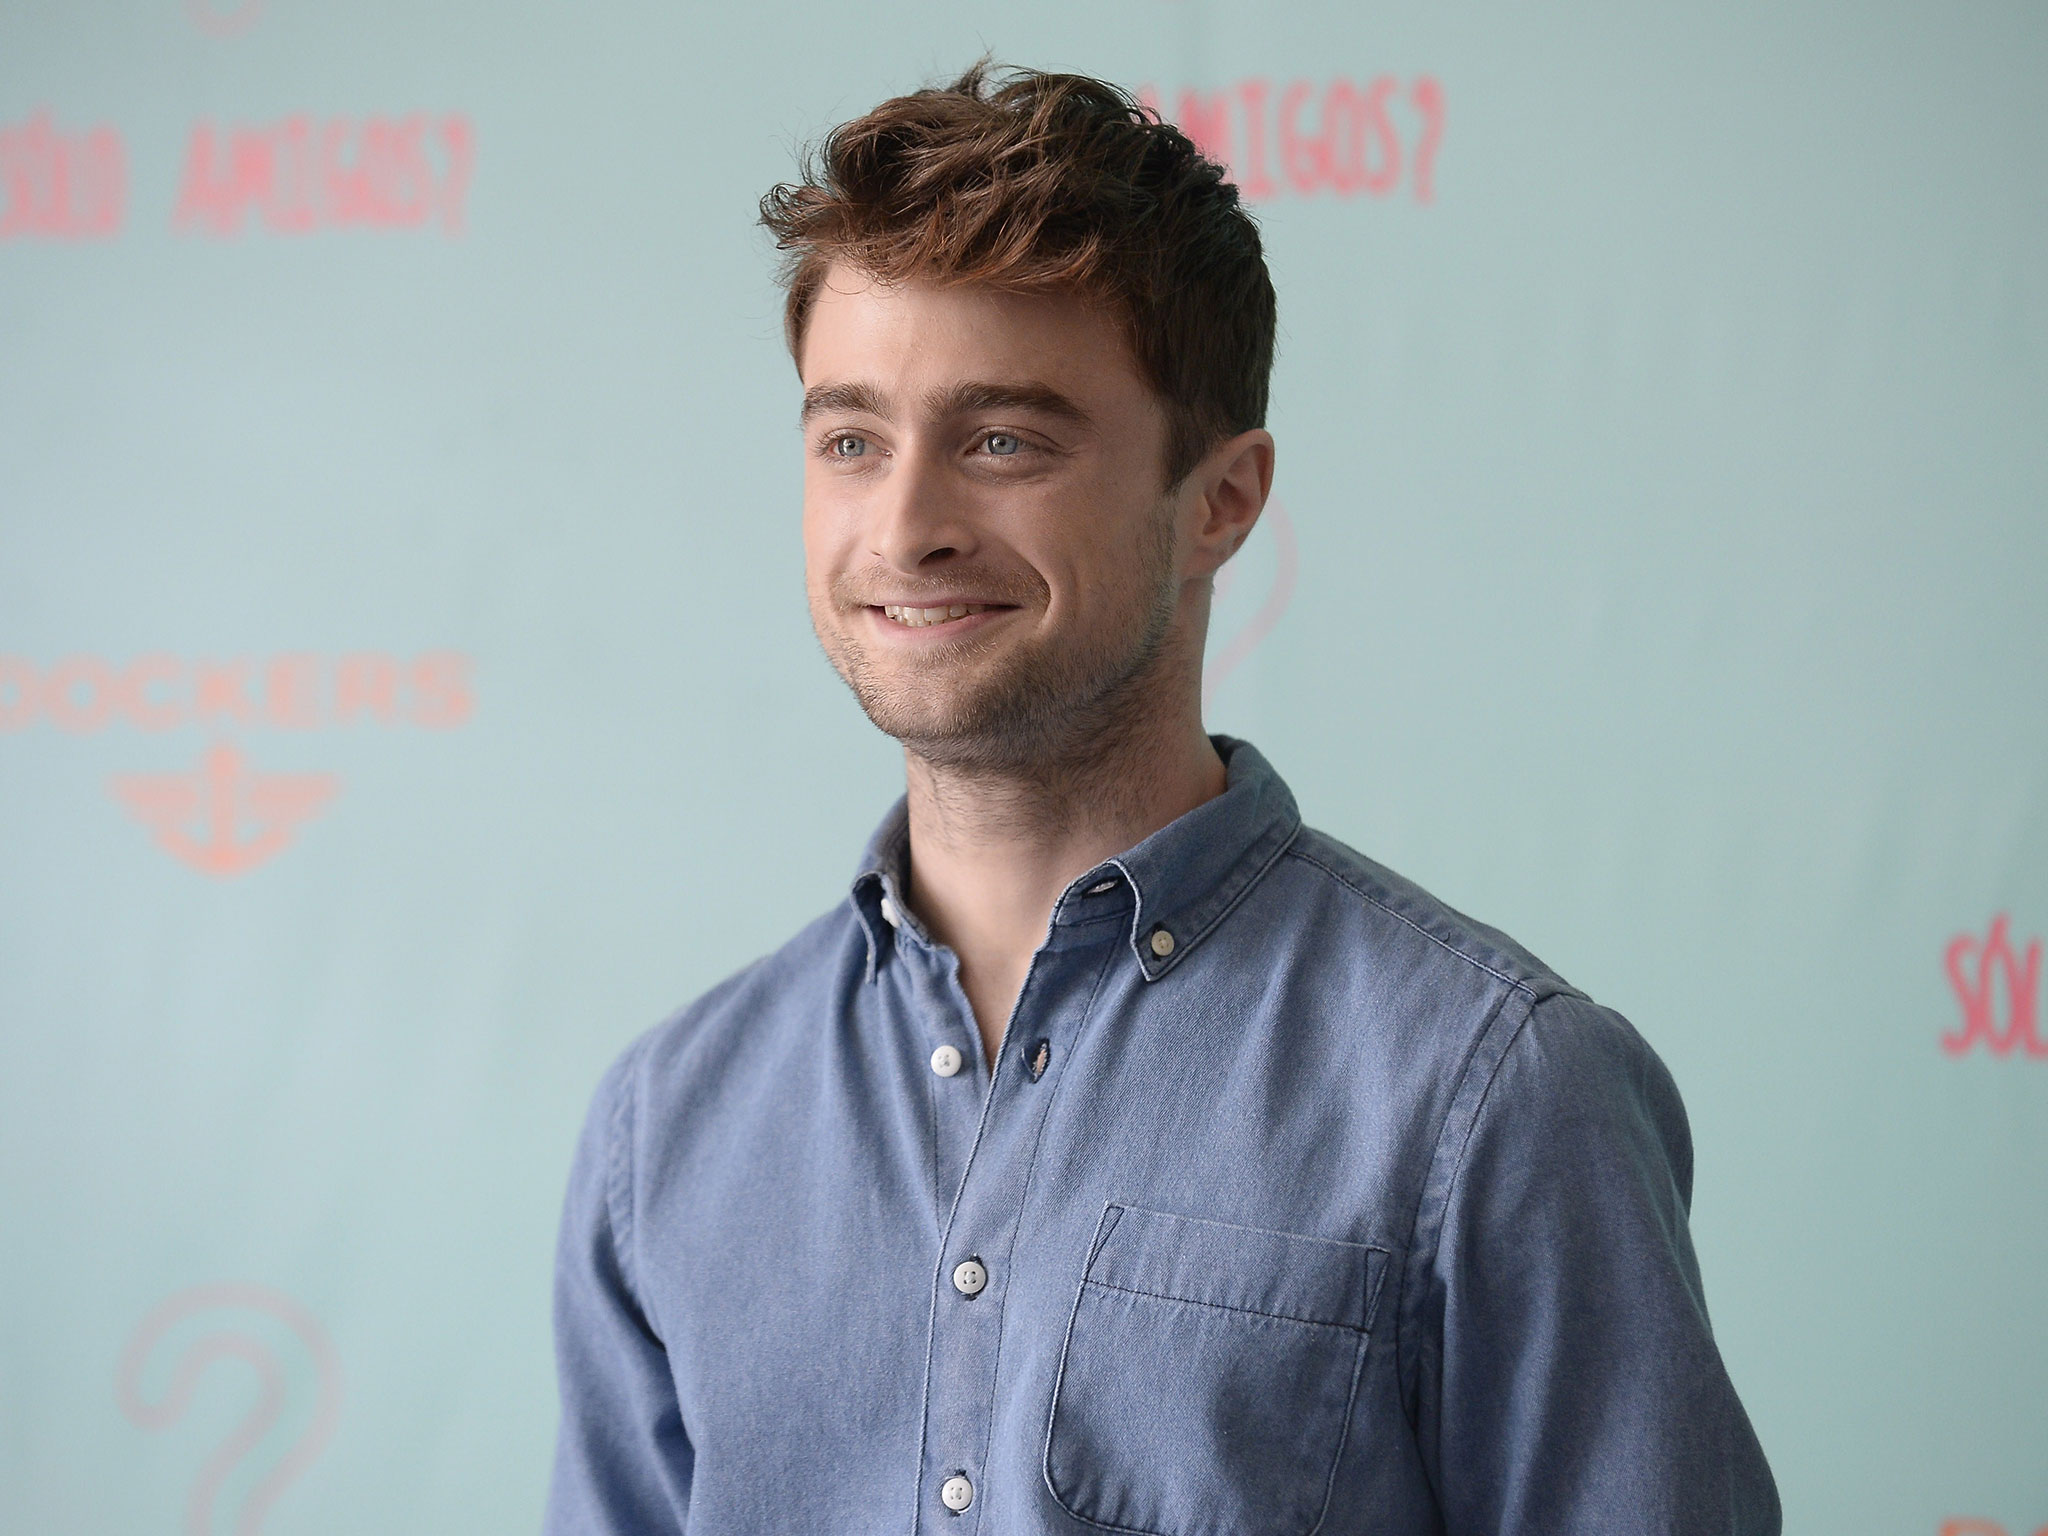 Daniel Radcliffe on being 'odd' romantic lead: 'Well, the male population had no problem sexualising Emma Watson immediately' - News - People - The ...